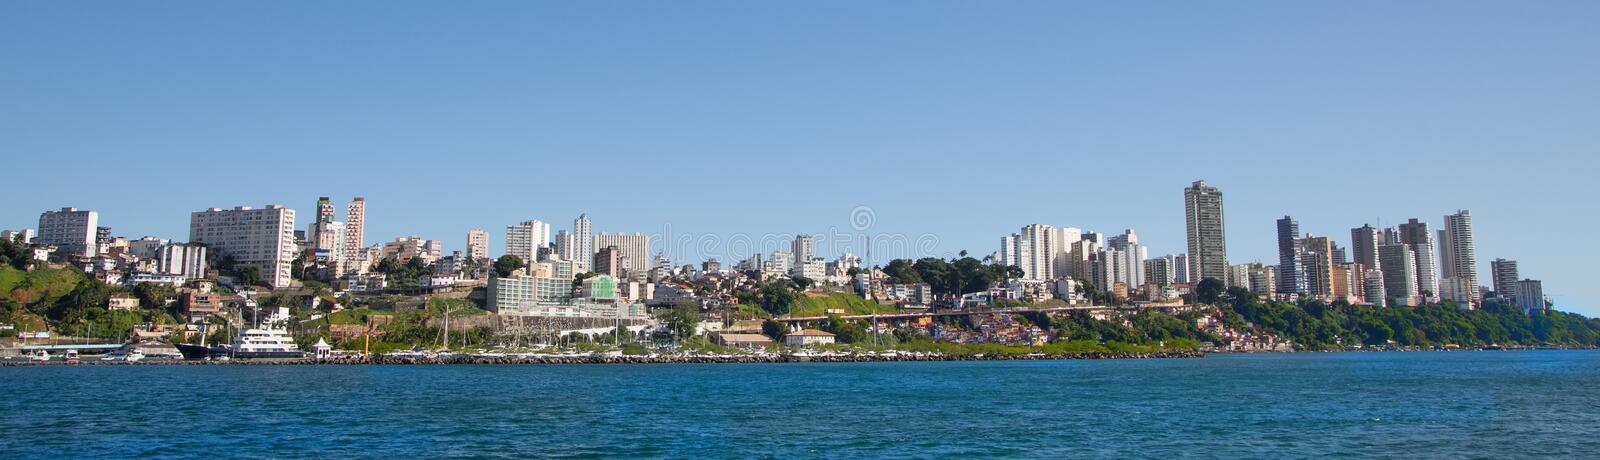 City of Salvador de Bahia in Brazil. Images from the seaside for. City of Salvador de Bahia in Brasilia. Image from the seaside for a skyline picture stock photo